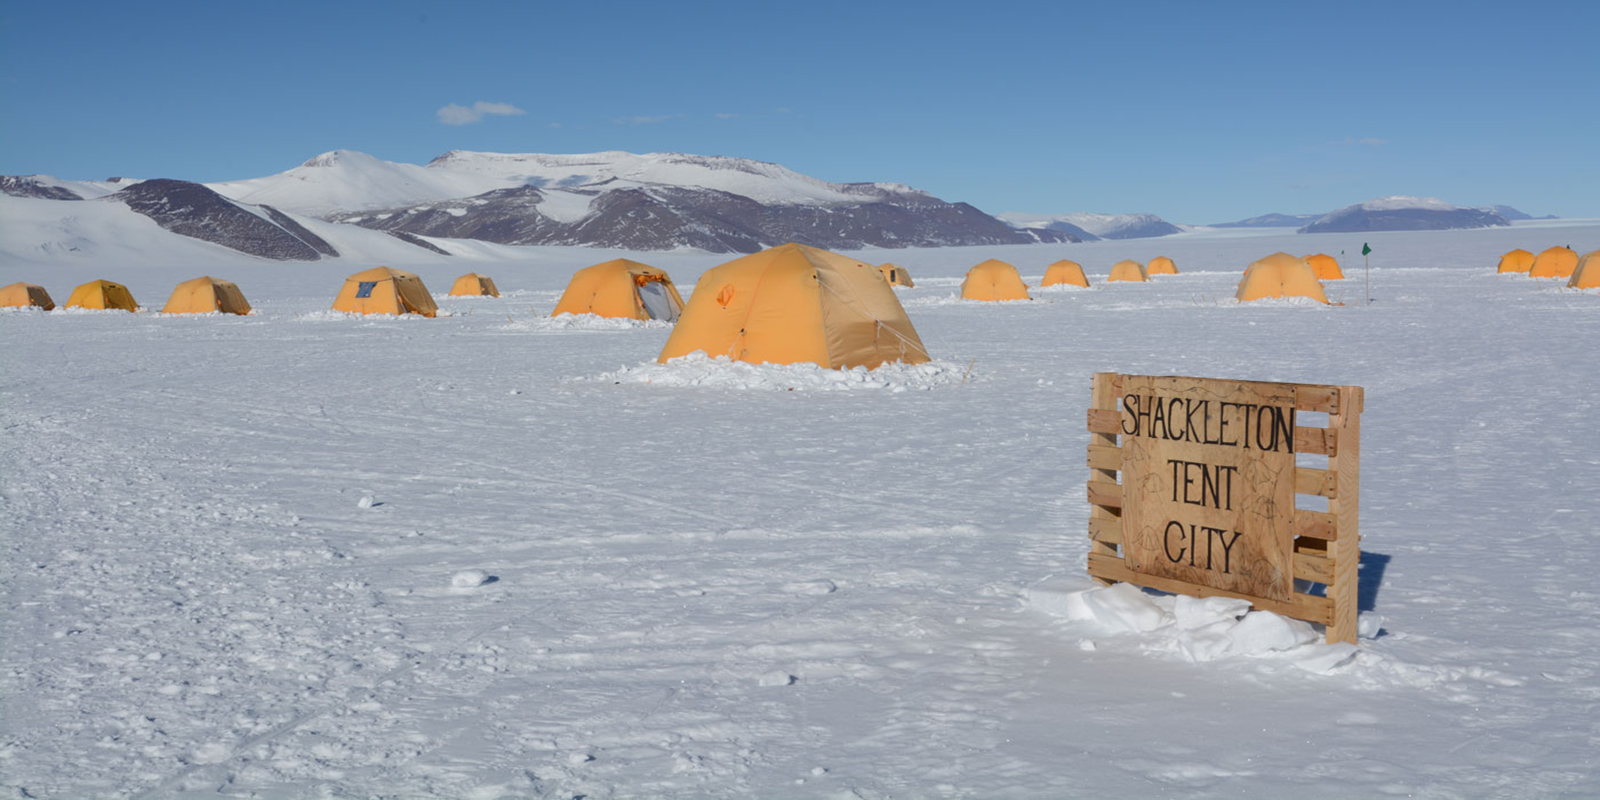 yellow tents sporadically placed on the snow form a camp